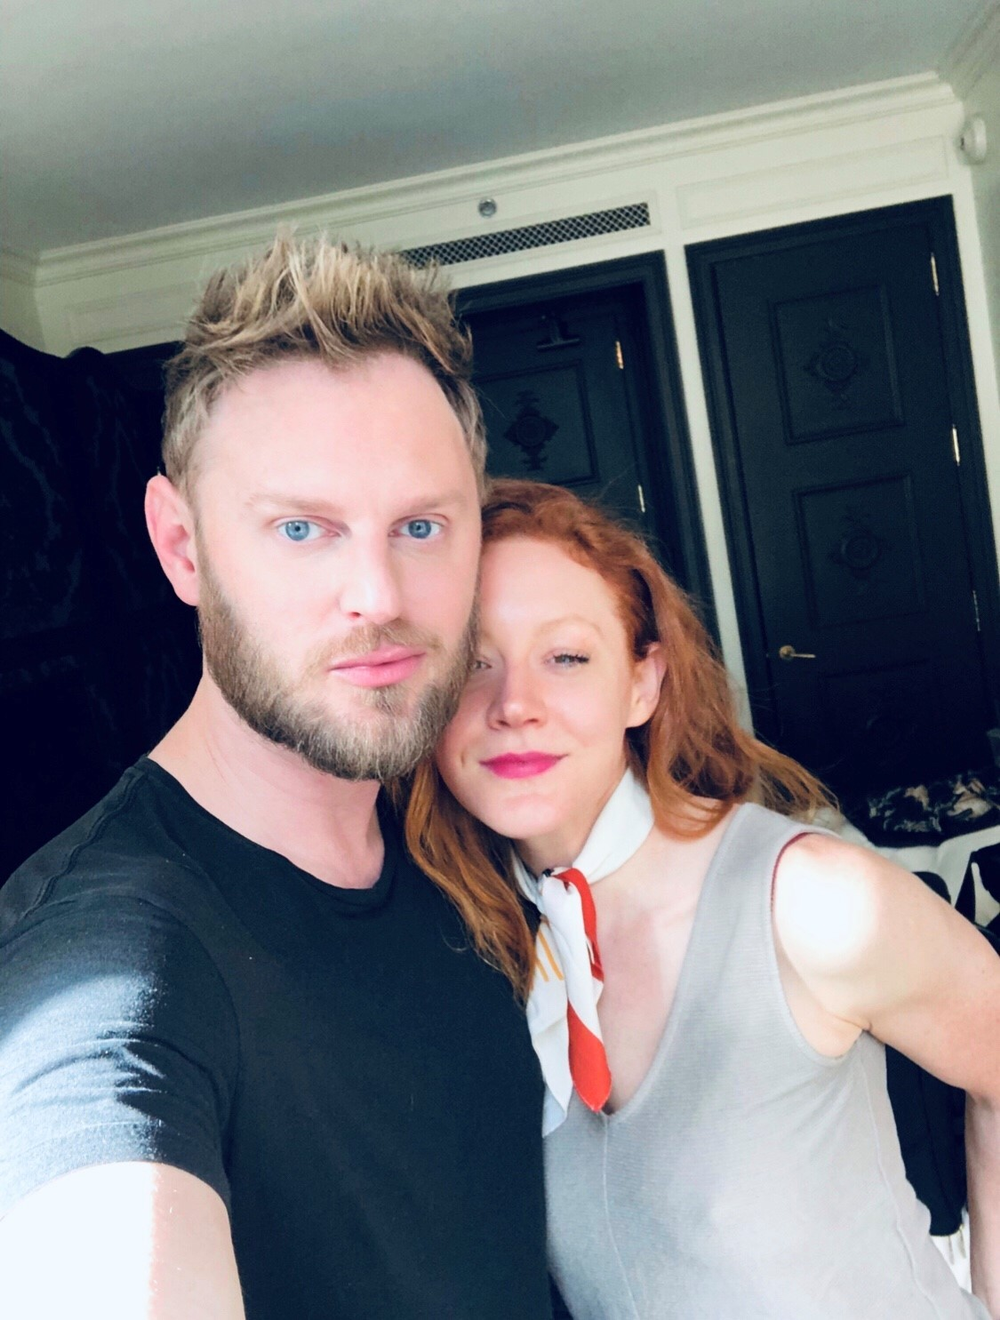 "<p>Celebrity stylist Jennifer Brent (right) uses Intelligent Nutrients certified organic hair care and skin care products on many of her ingredient-conscious clients, like <em>Queer Eye's</em> Bobby Berk. ""Bobby loves the line. His favorites include the Volumizing Foam, Volumizing Spray, Time Traveler, Revitalizing Moisture Crème, Nourishing Tonic and Lip Delivery Nutrition!"" she says.</p>"